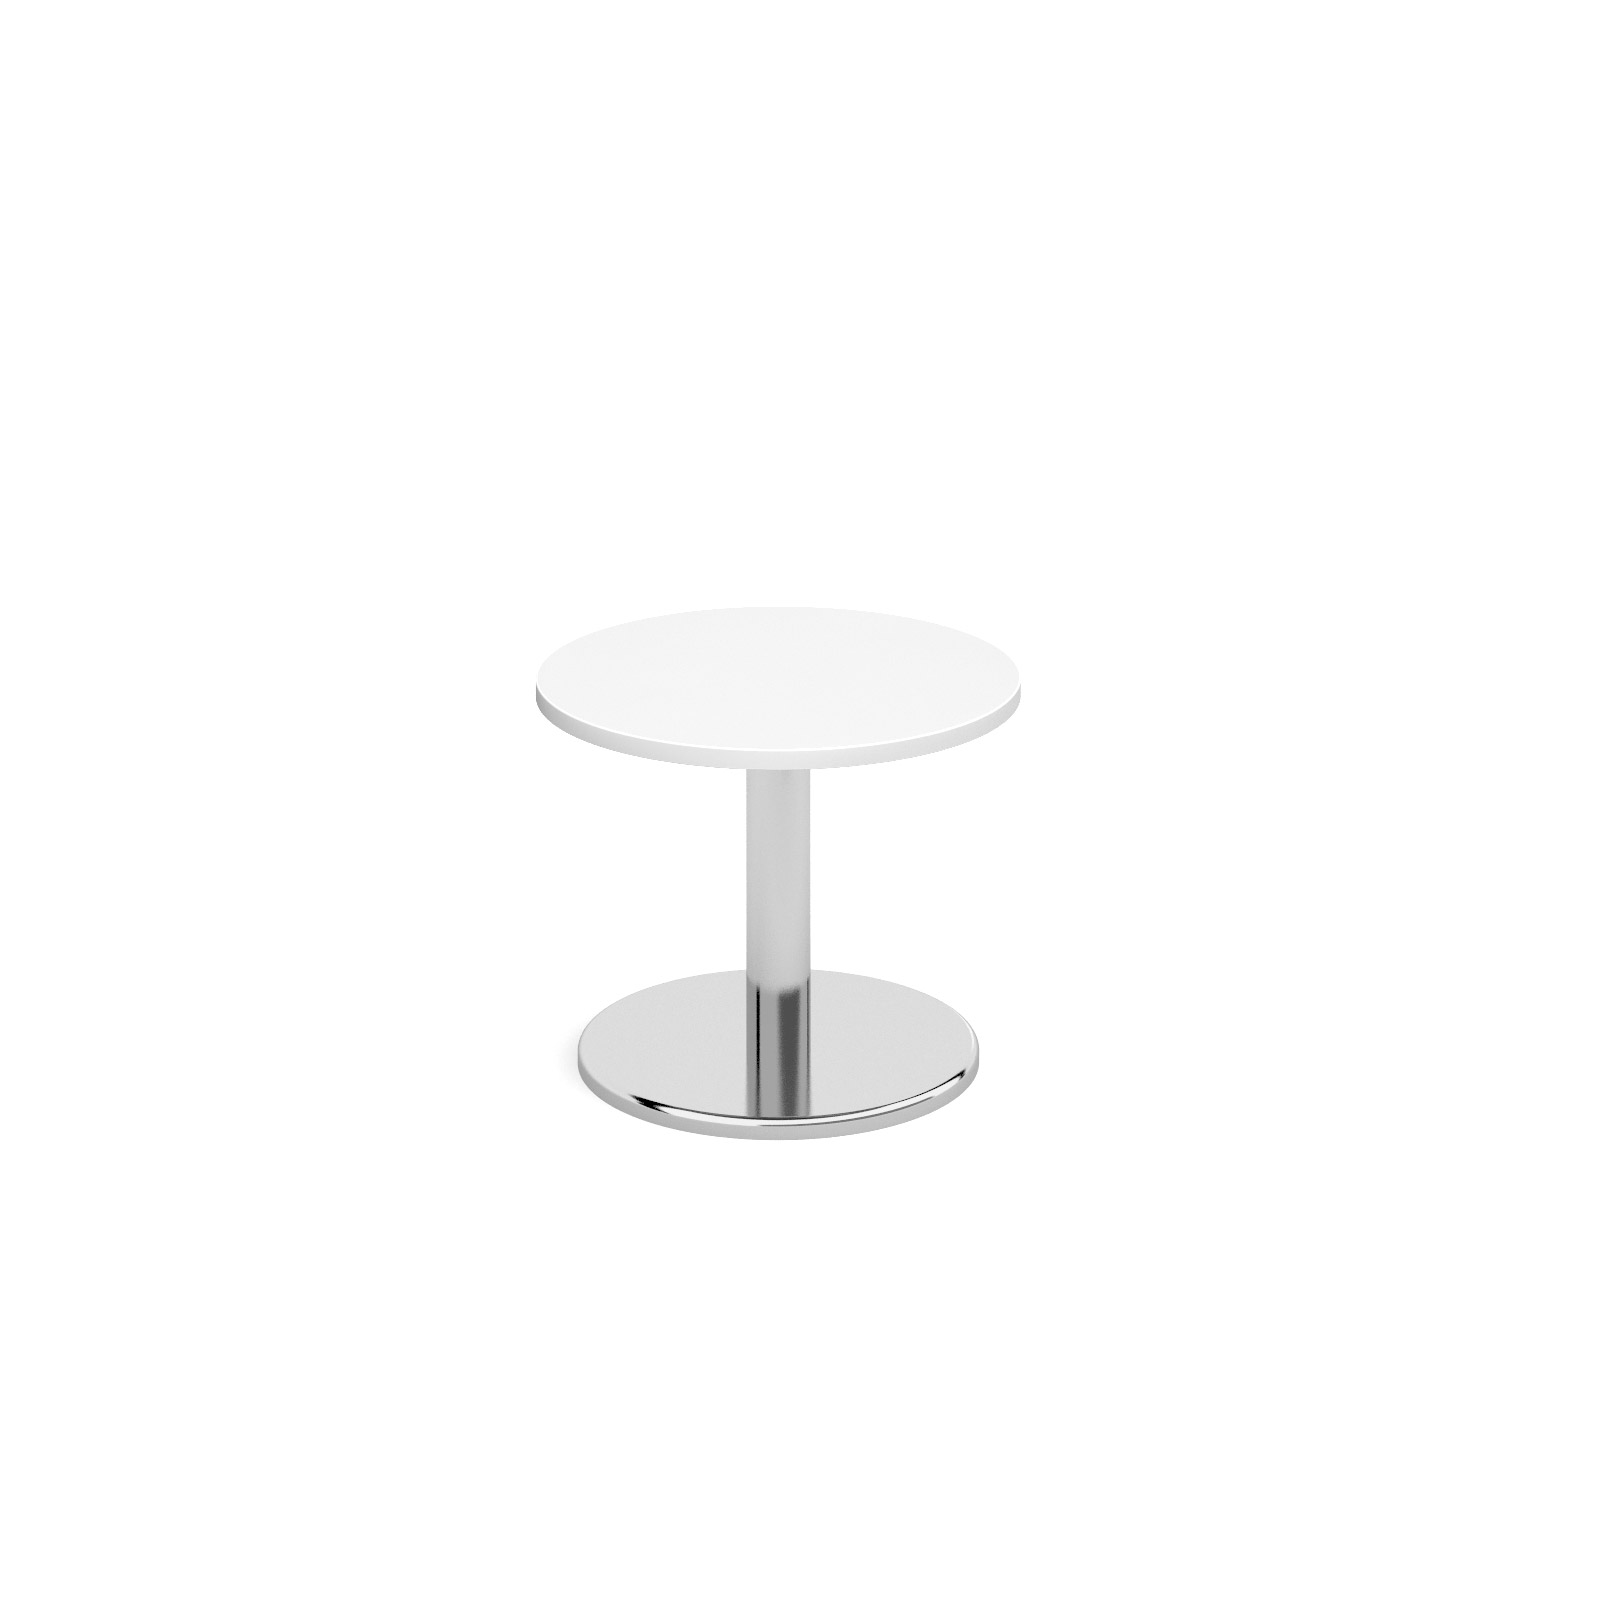 Circular coffee table with round chrome base 600mm - white